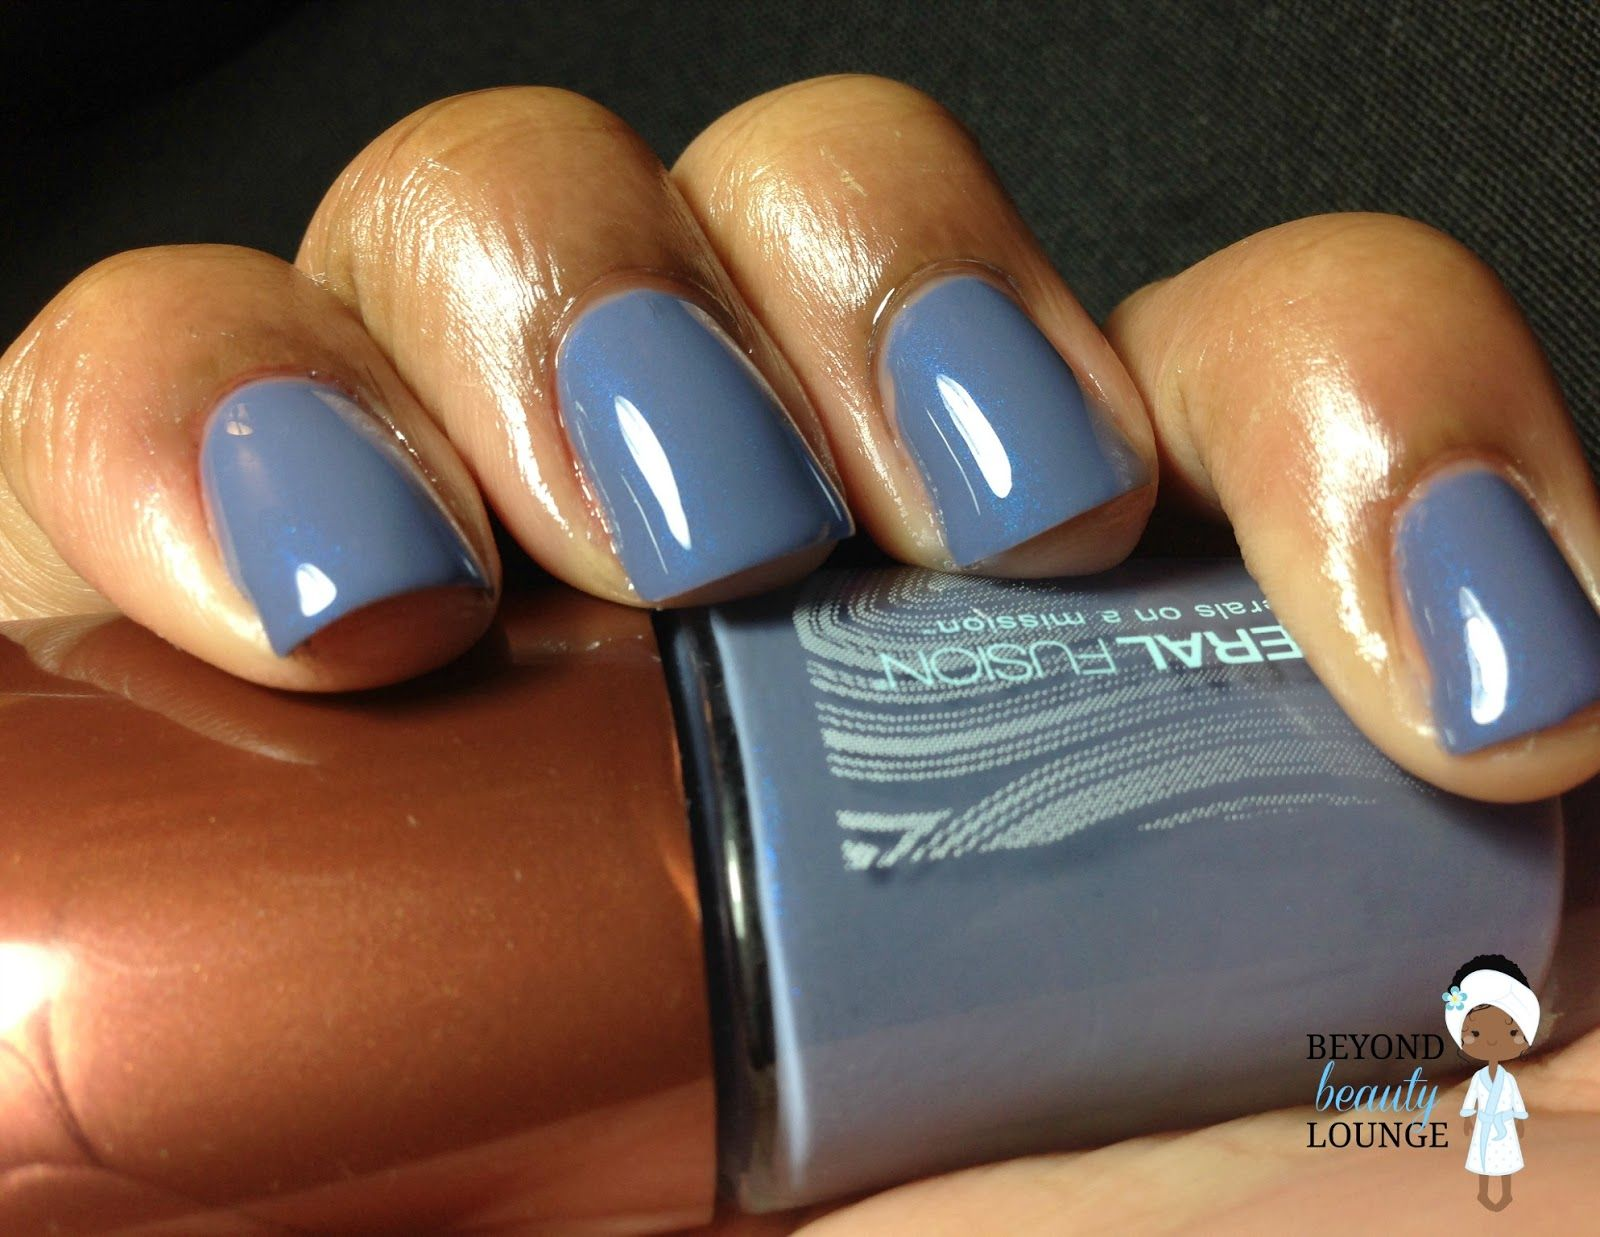 Mineral Fusion Vegan Nail Polish Swatches & Review